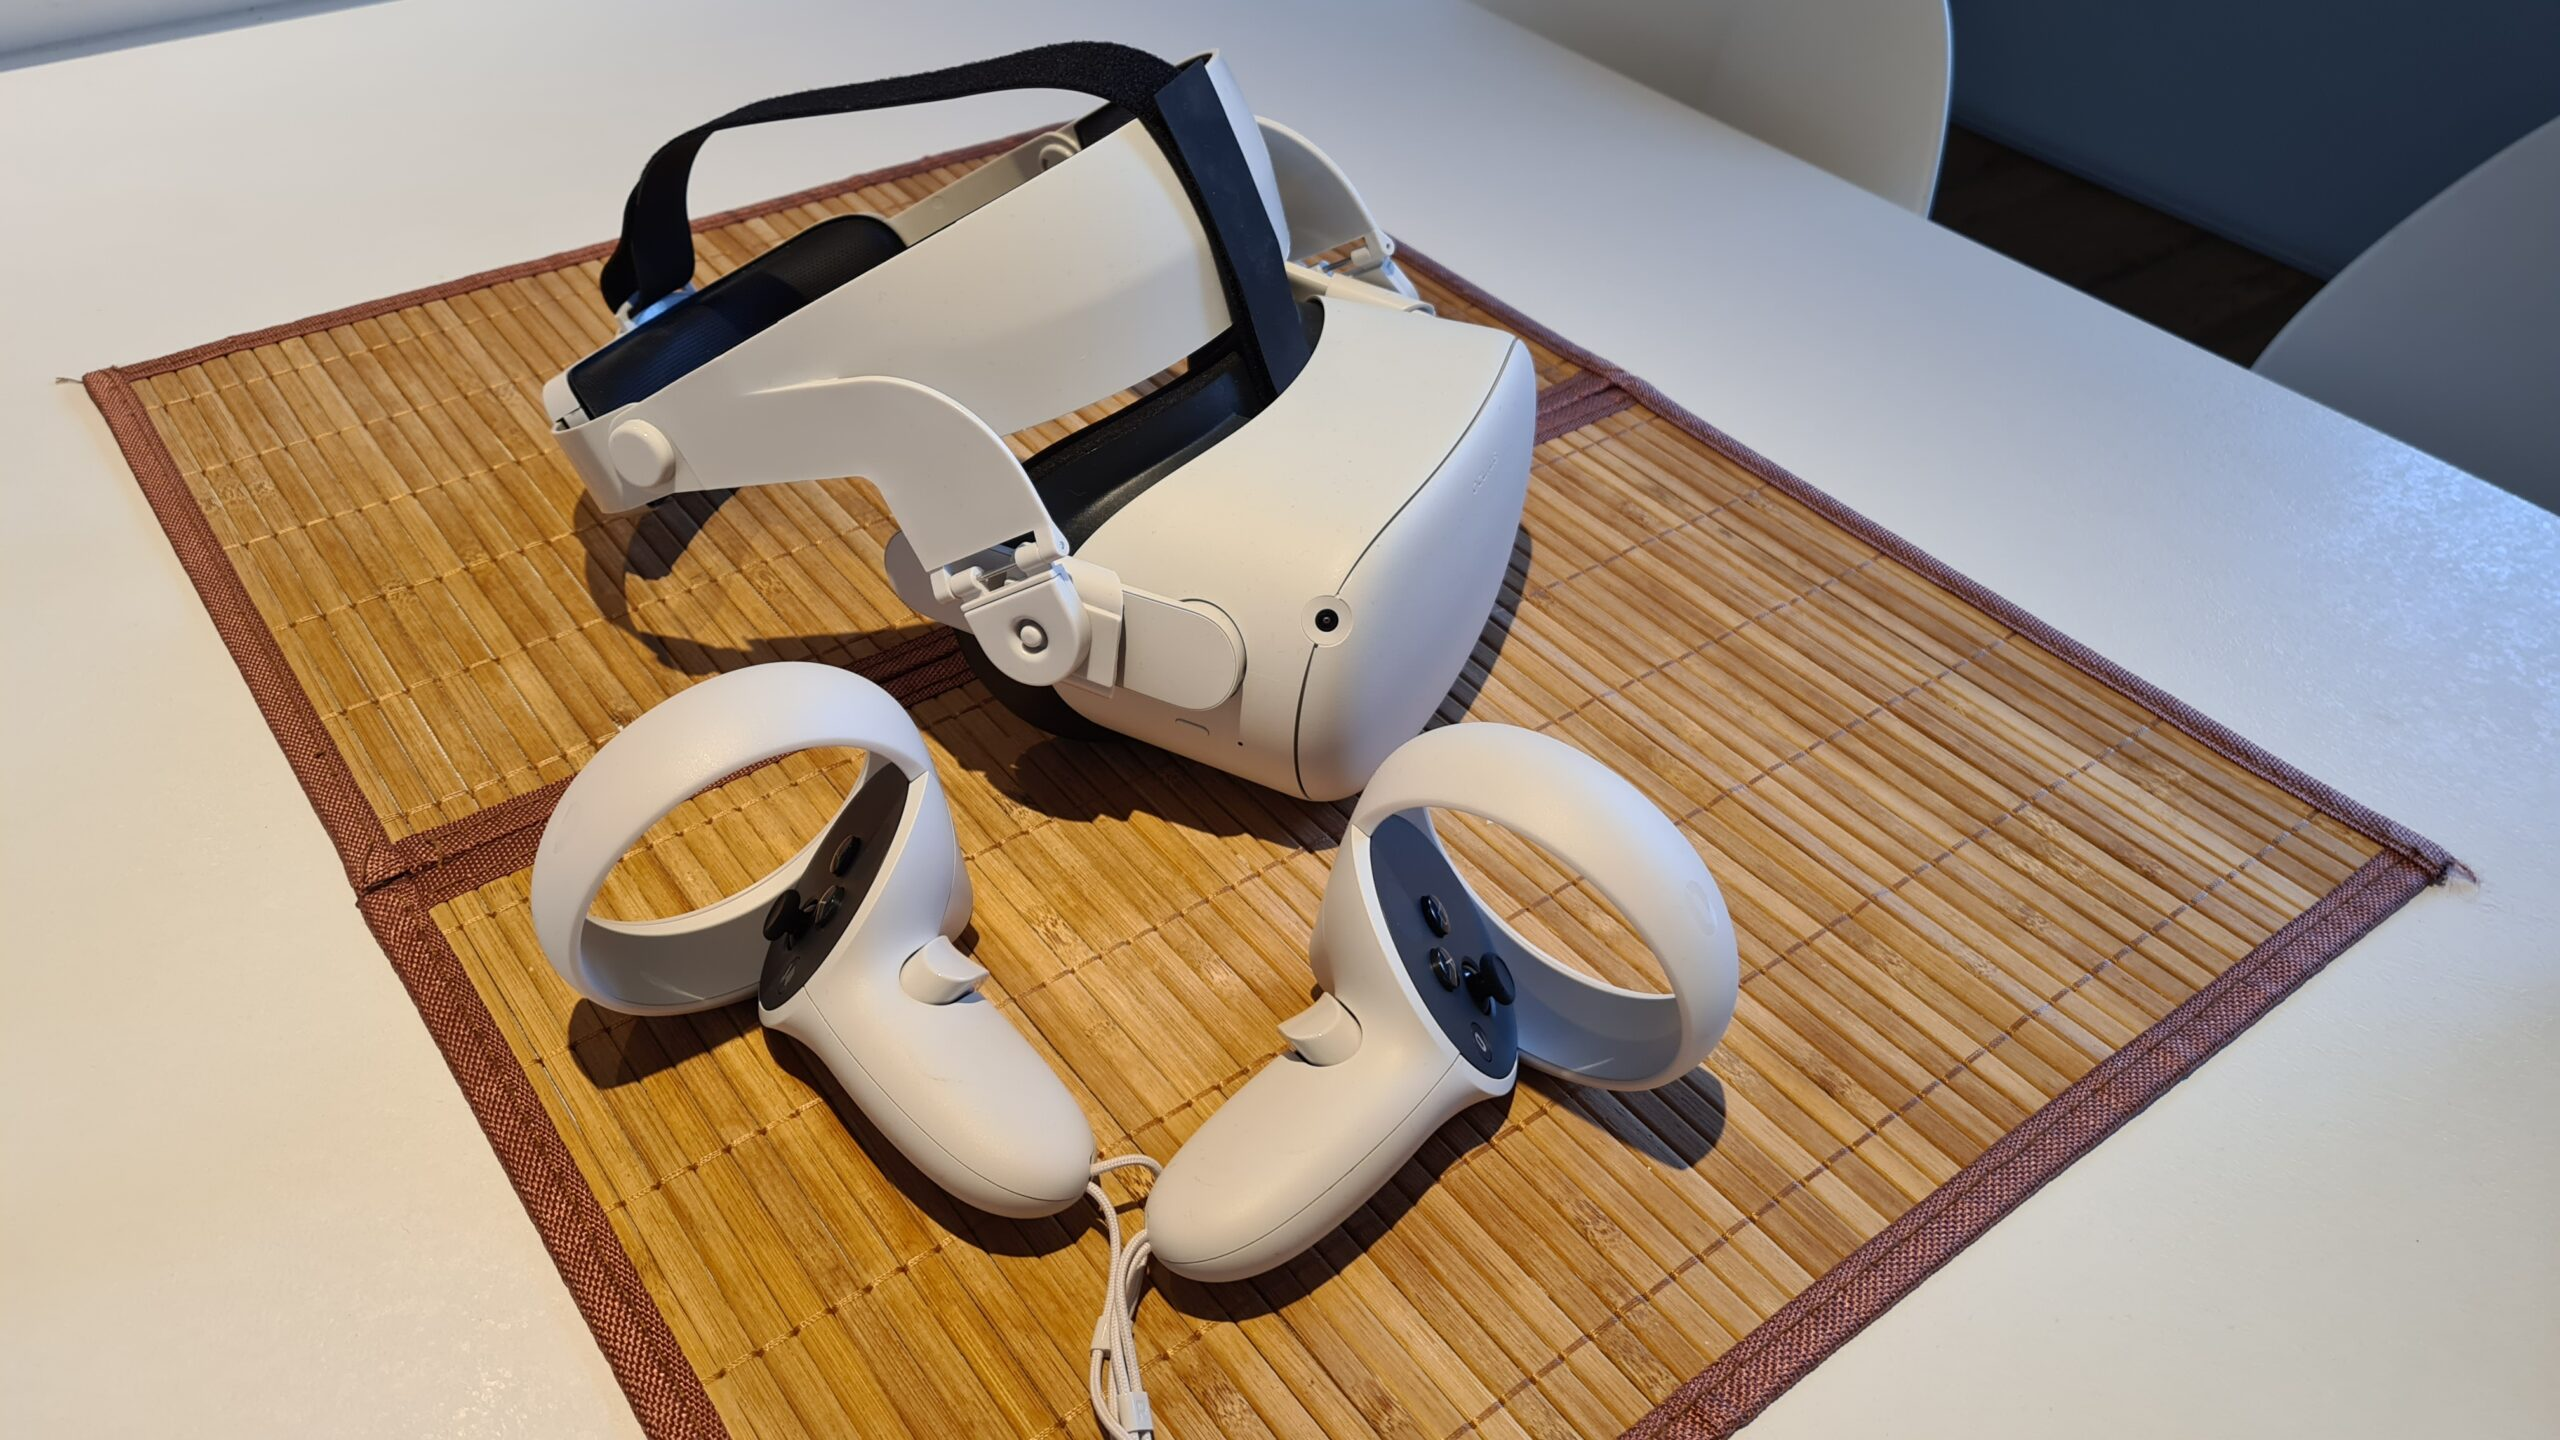 Oculus Quest with halo strap